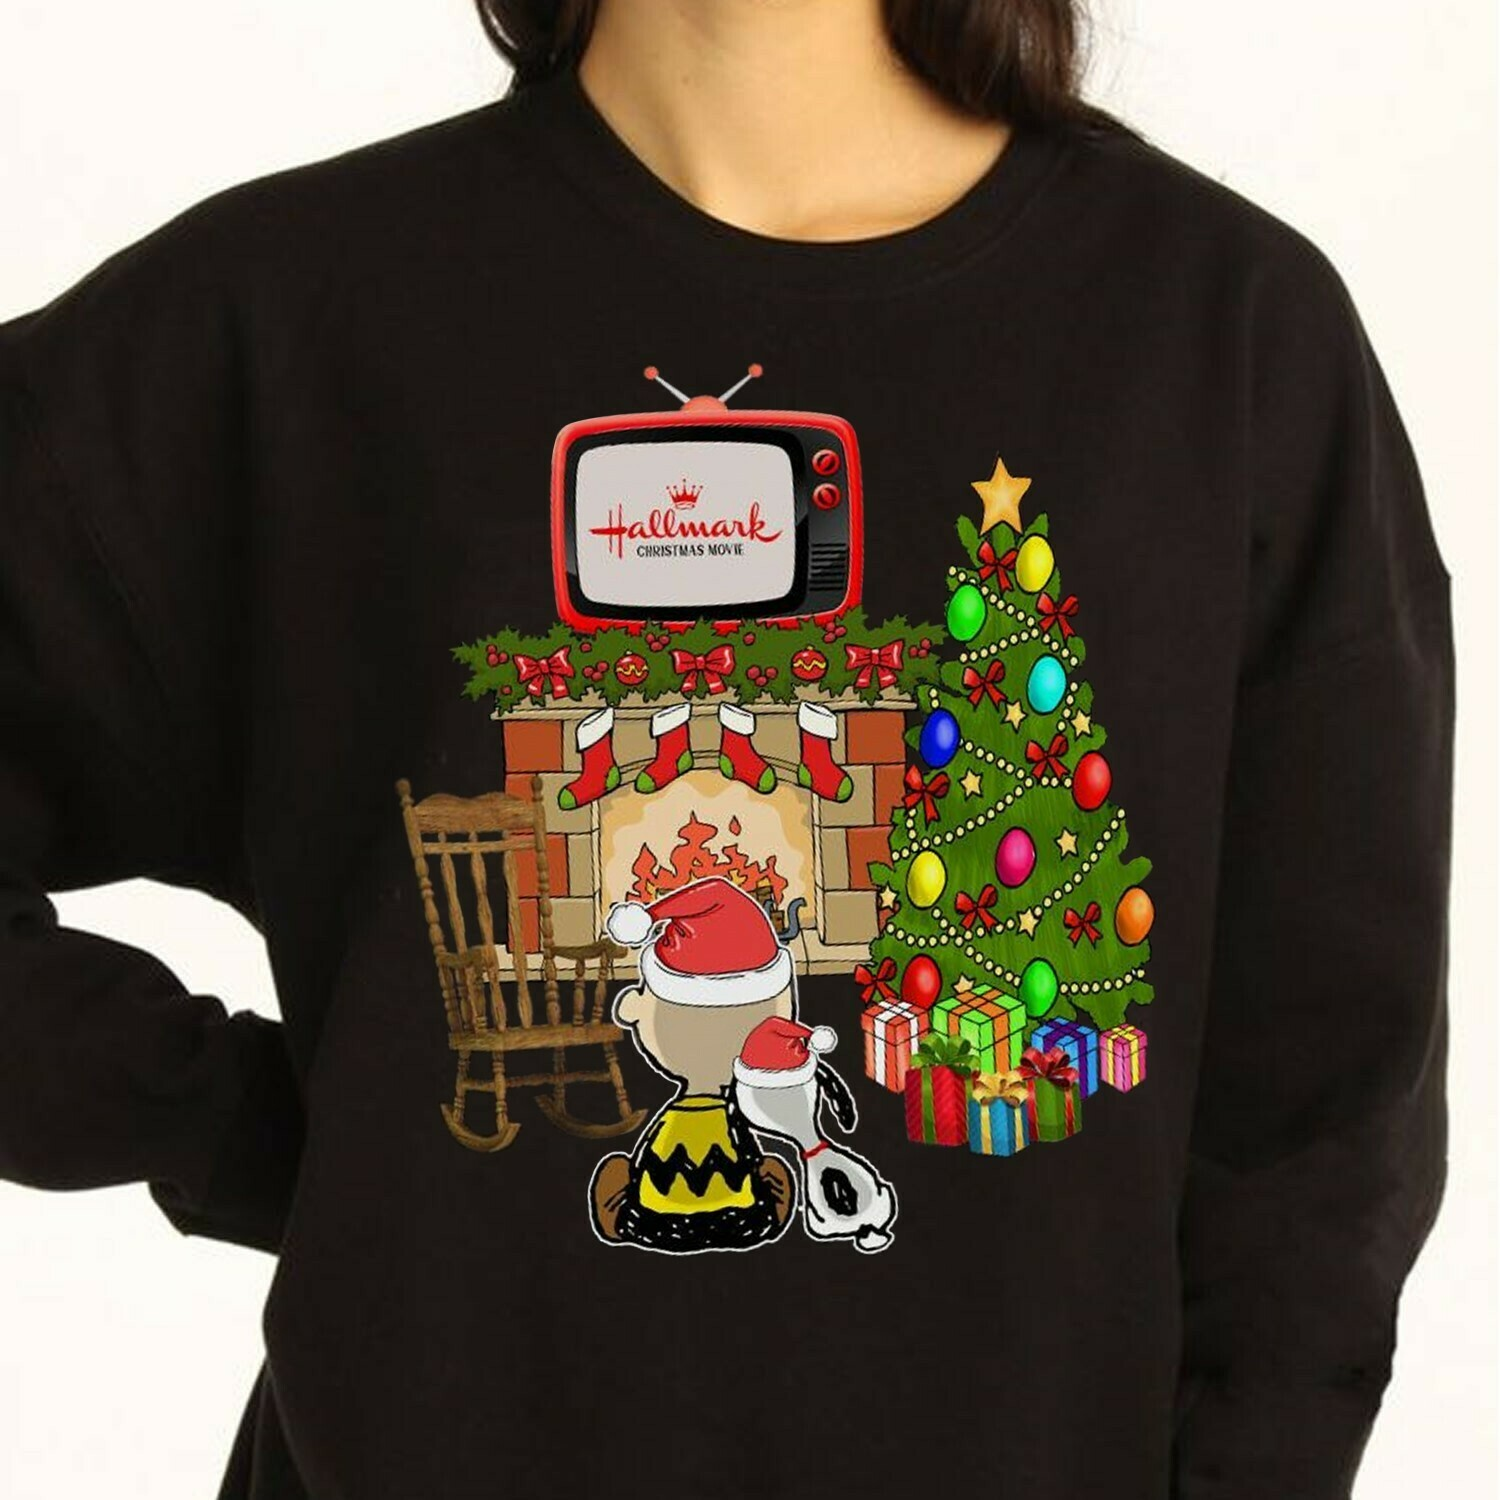 Hallmark christmas movie Winnie Watching The Snoopy and Friends Christmas Tree,Gifts For Lovers Christmas Noel Friend Team Party T-Shirt Long Sleeve Sweatshirt Hoodie Jolly Family Gifts